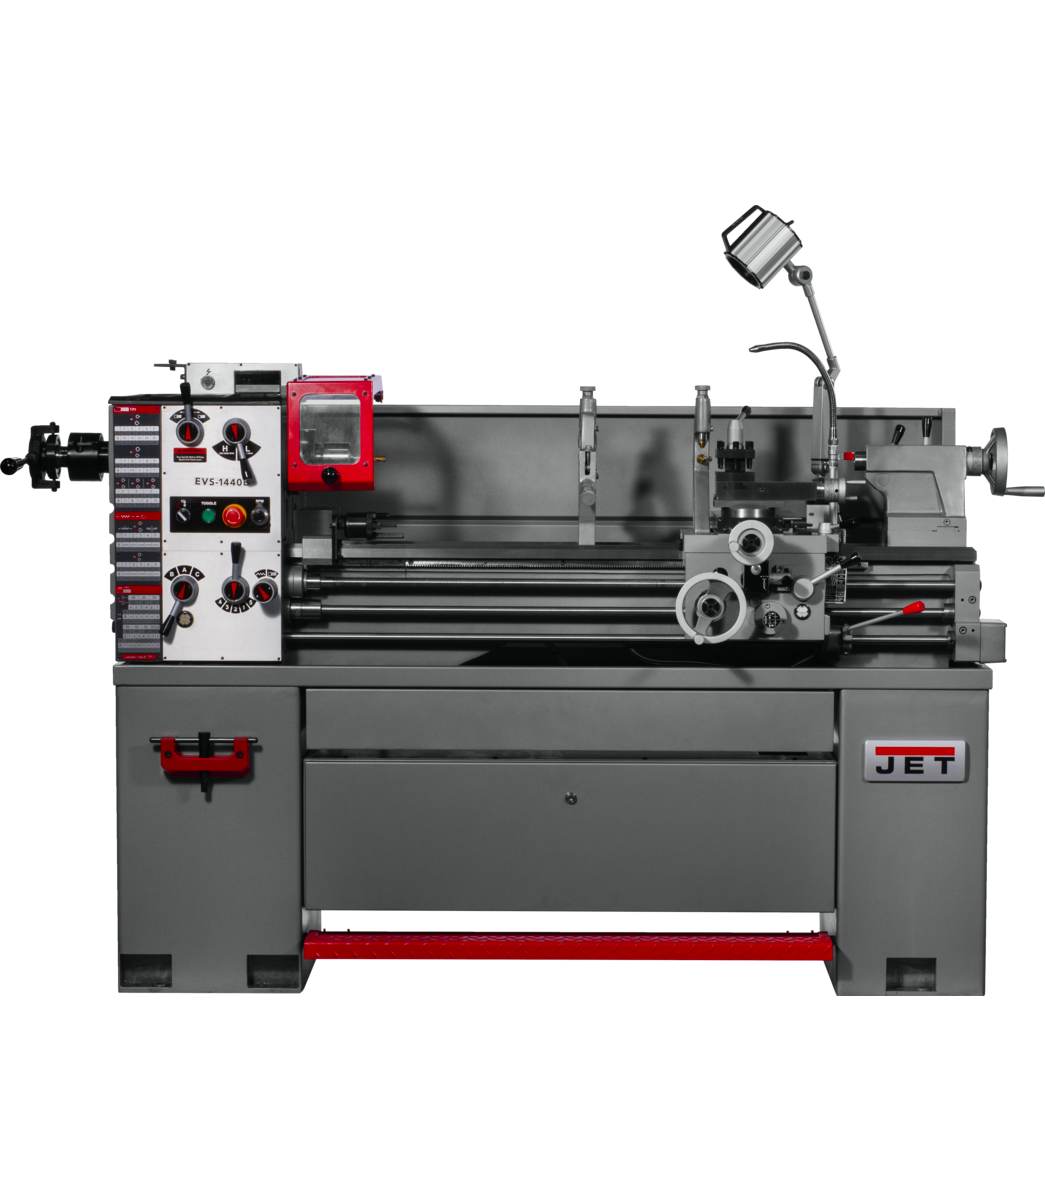 EVS-1440 Electronic Variable Speed lathe with Newall DP700 DRO, Taper Attachment & Collet Closer,3HP